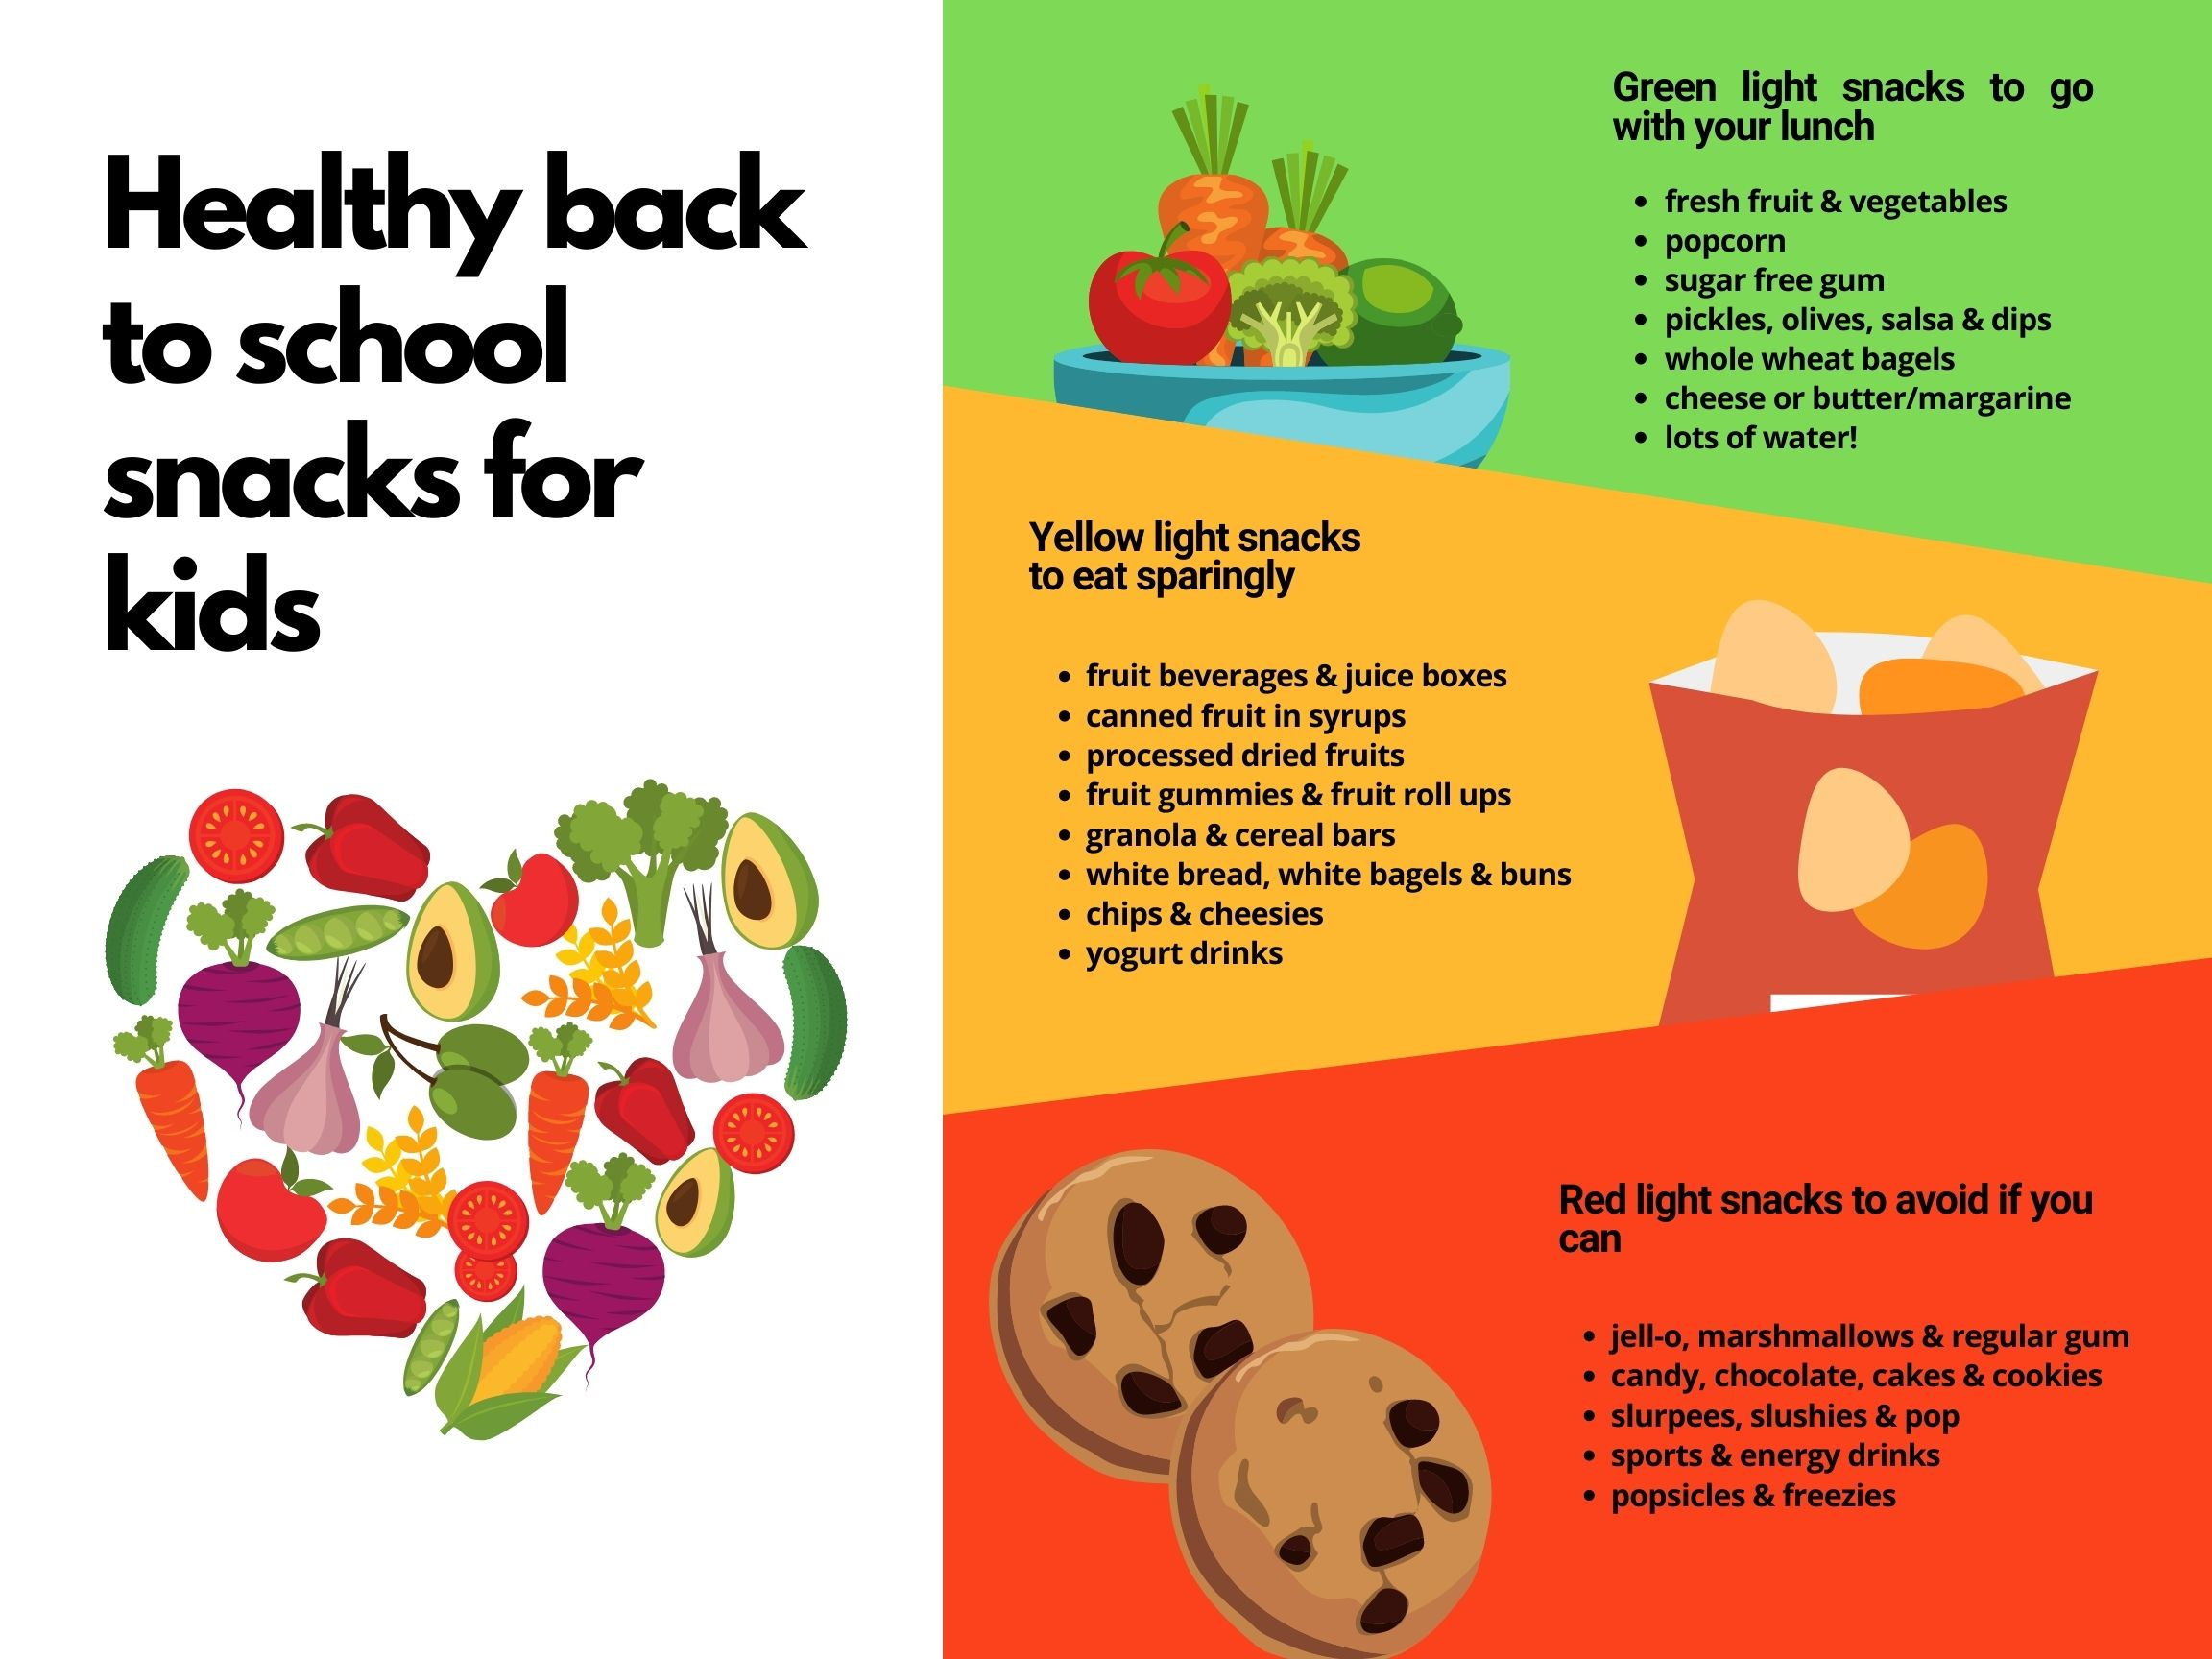 Healthy back to school snacks for kids